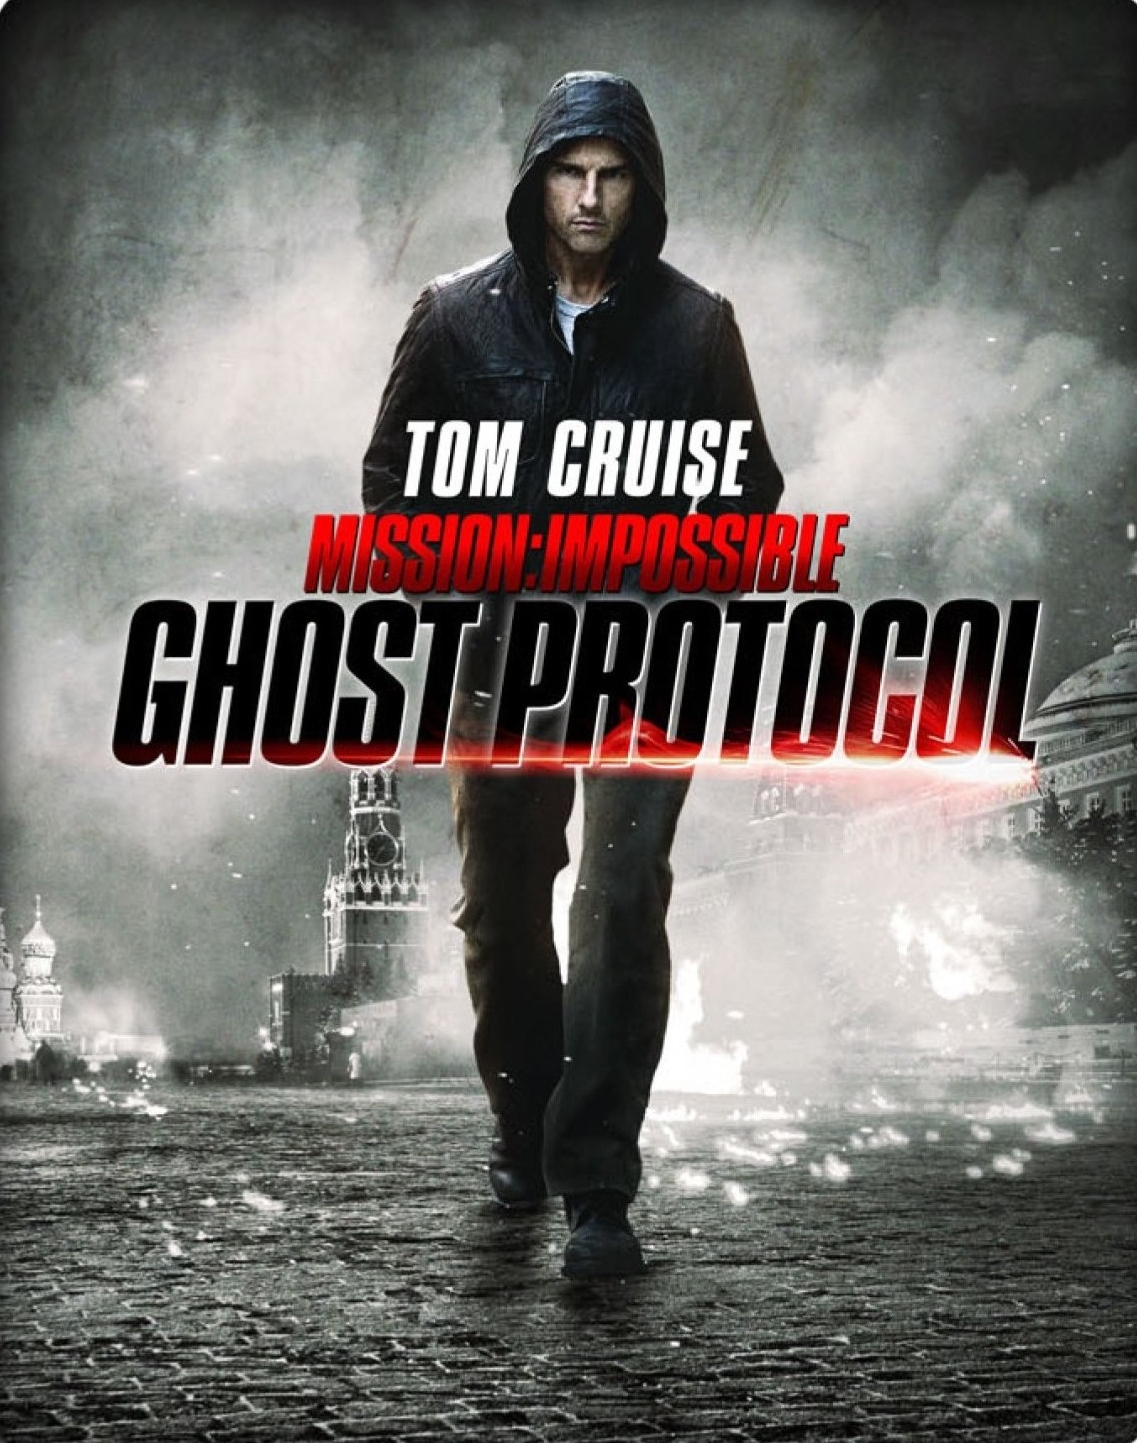 Mission: Impossible - Ghost Protocol (2011) - Directed by: Brad BirdStarring: Tom Cruise, Jeremy Renner, Paula Patton, Simon PeggRated: PG13Running Time: 2h 12mTMM Score: 3 stars out of 5STRENGTHS: Set PiecesWEAKNESSES: Terrible 3rd Act